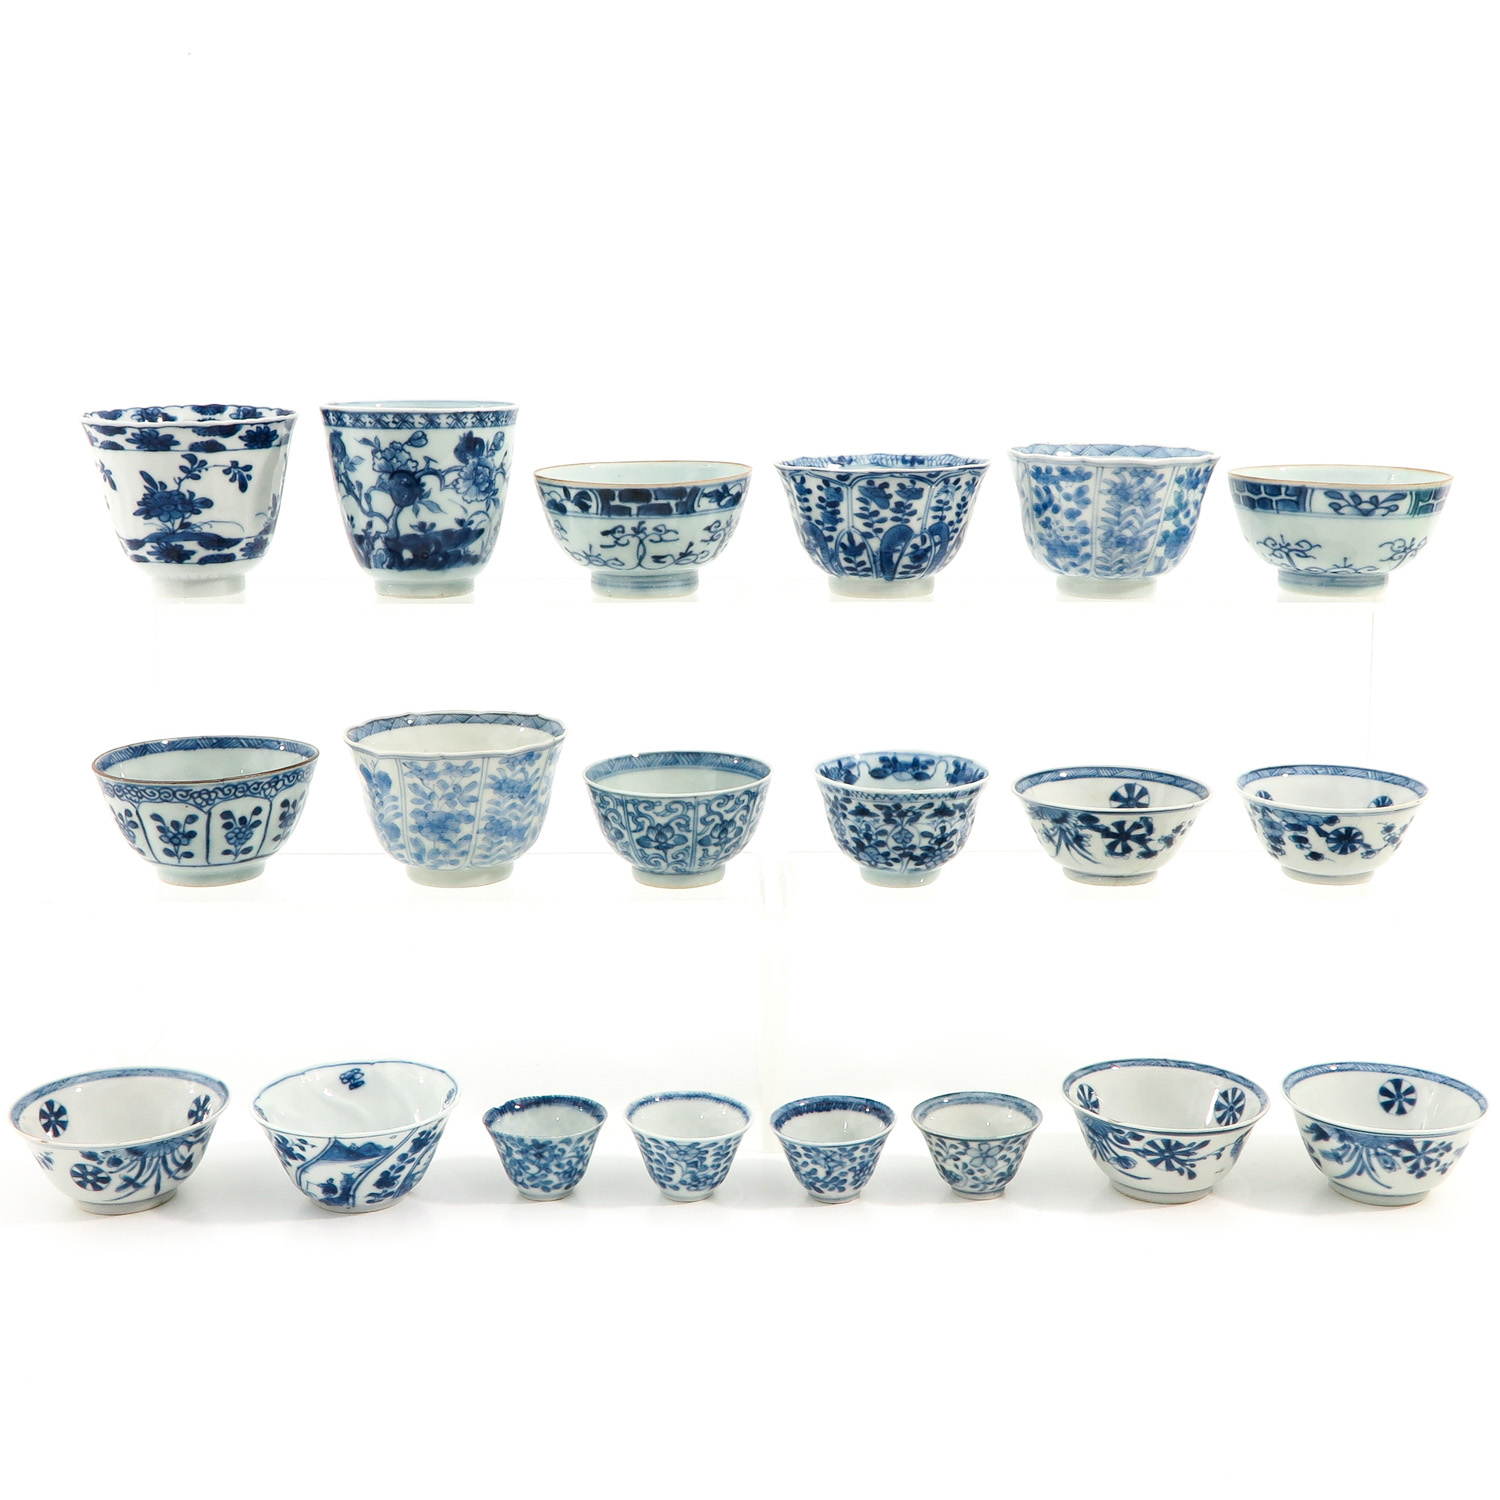 A Collection of 20 Cups